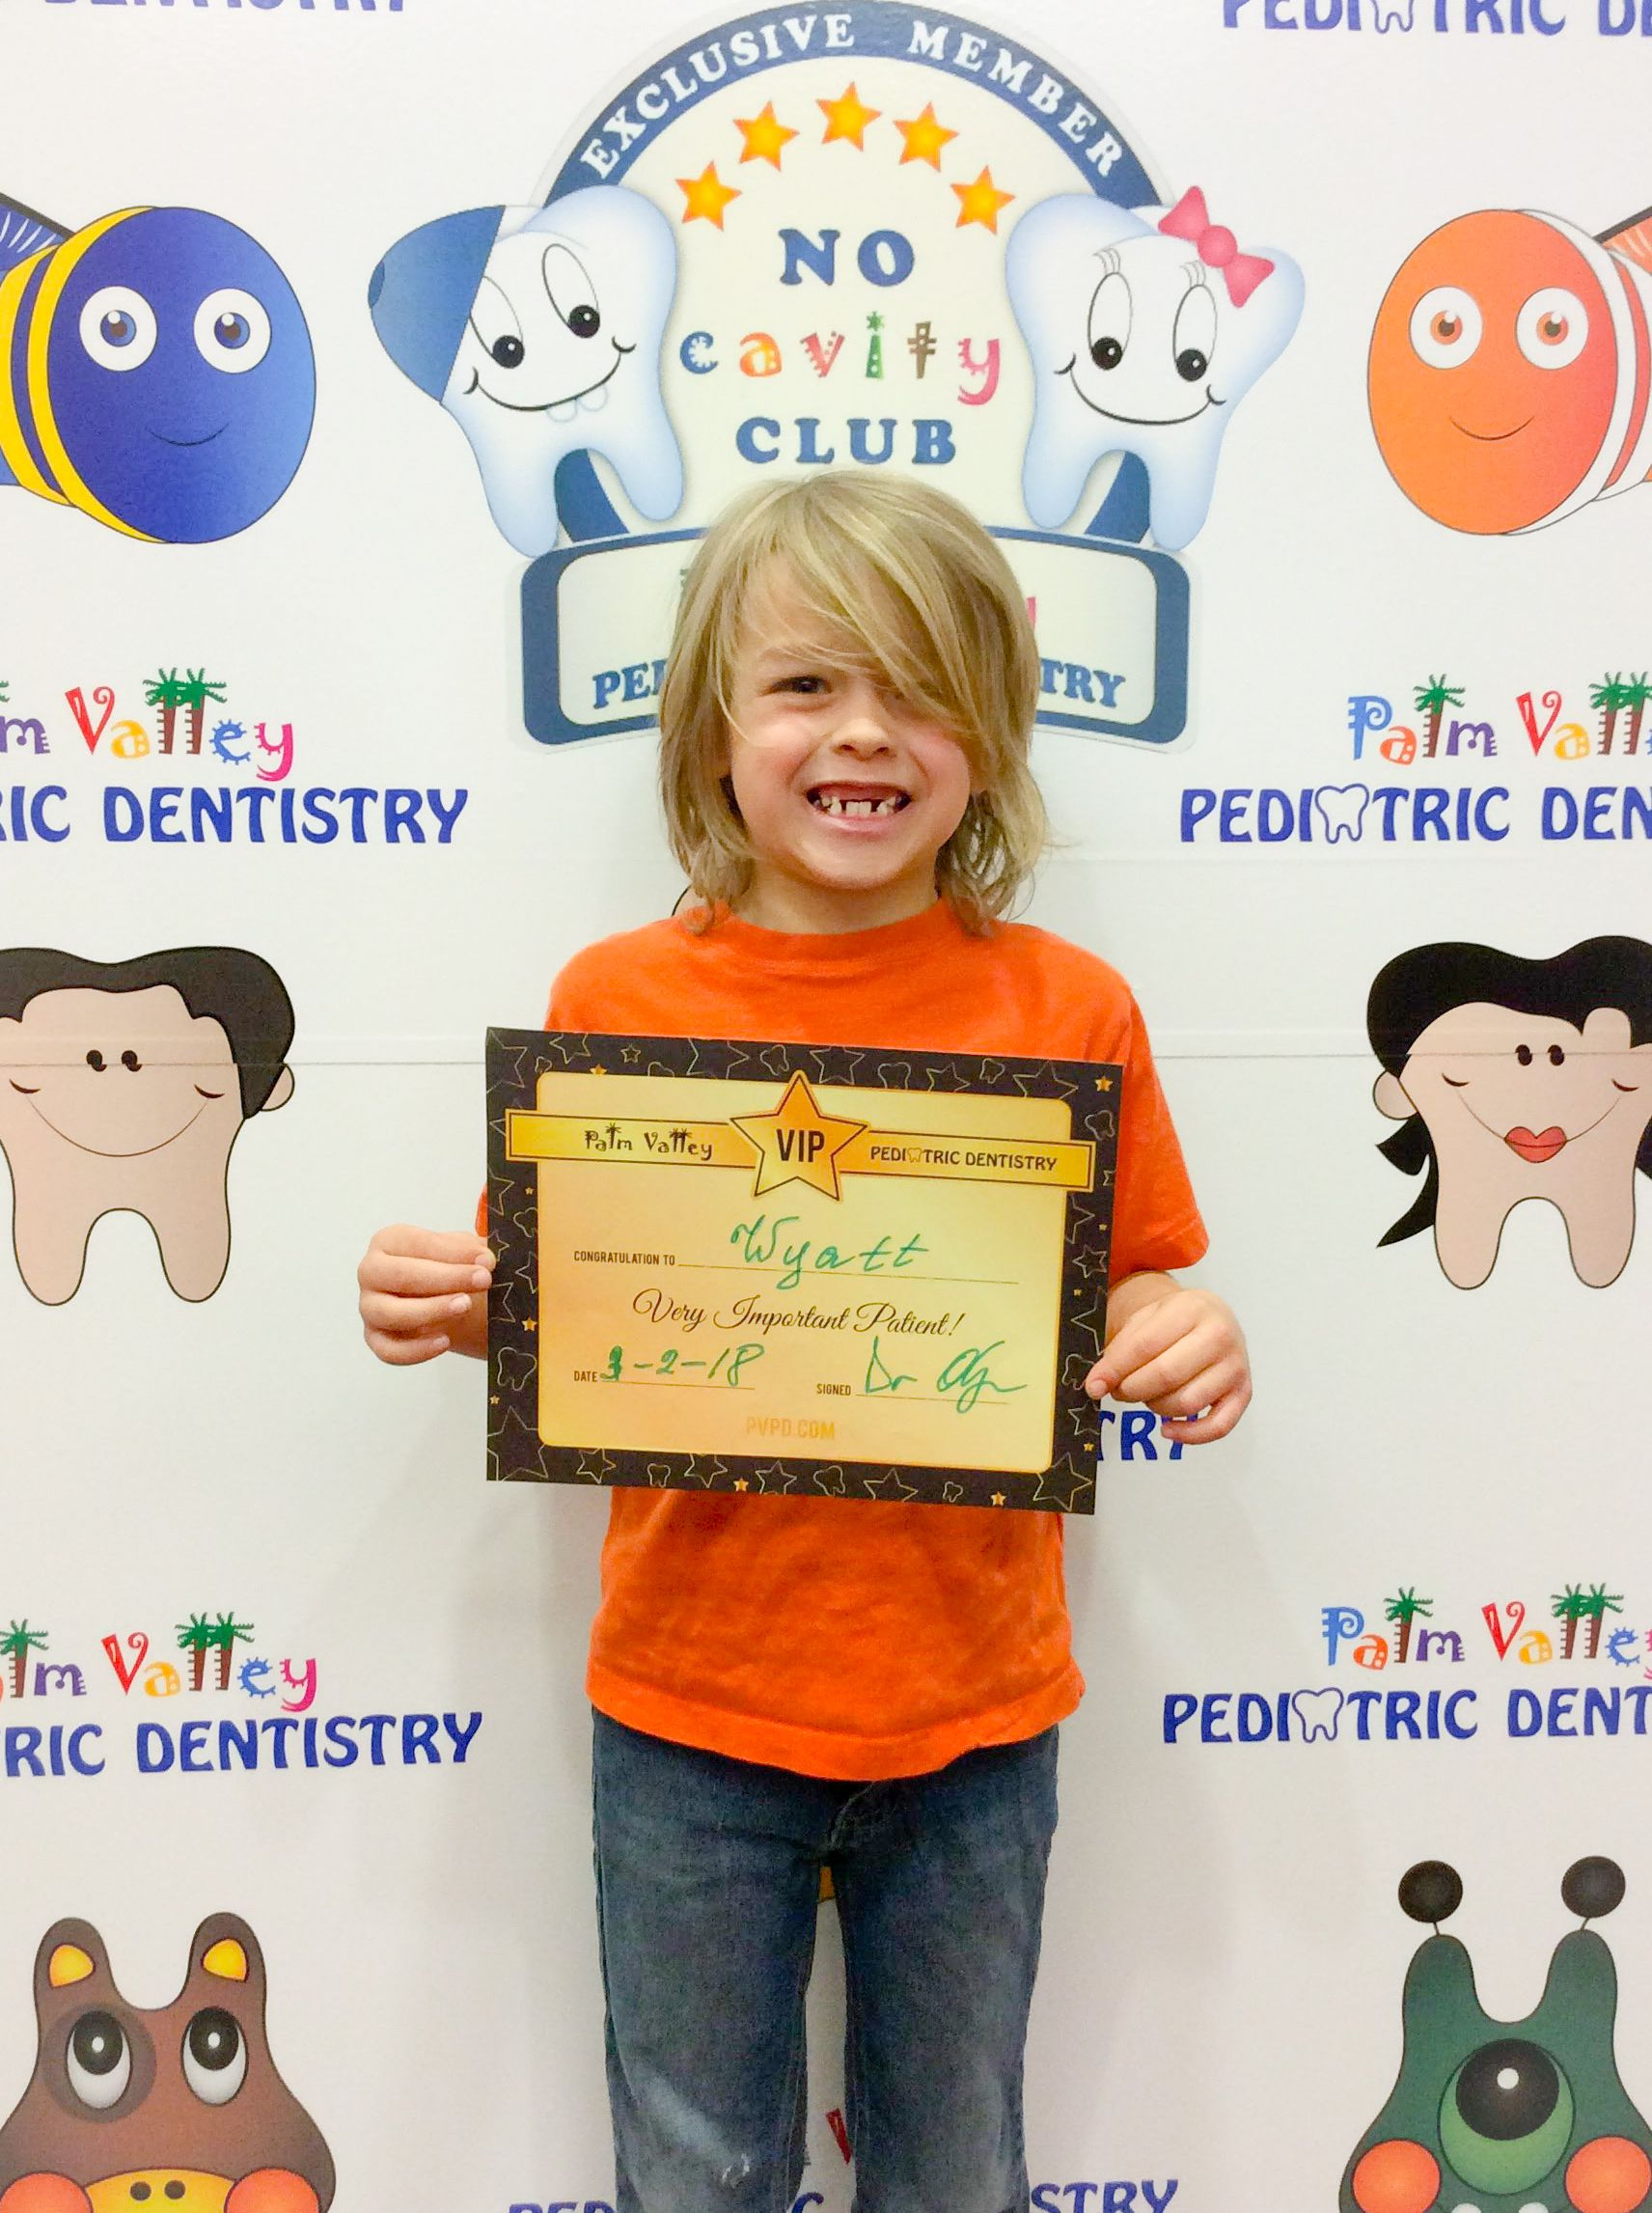 At pvpd palm valley pediatric dentistry it is our